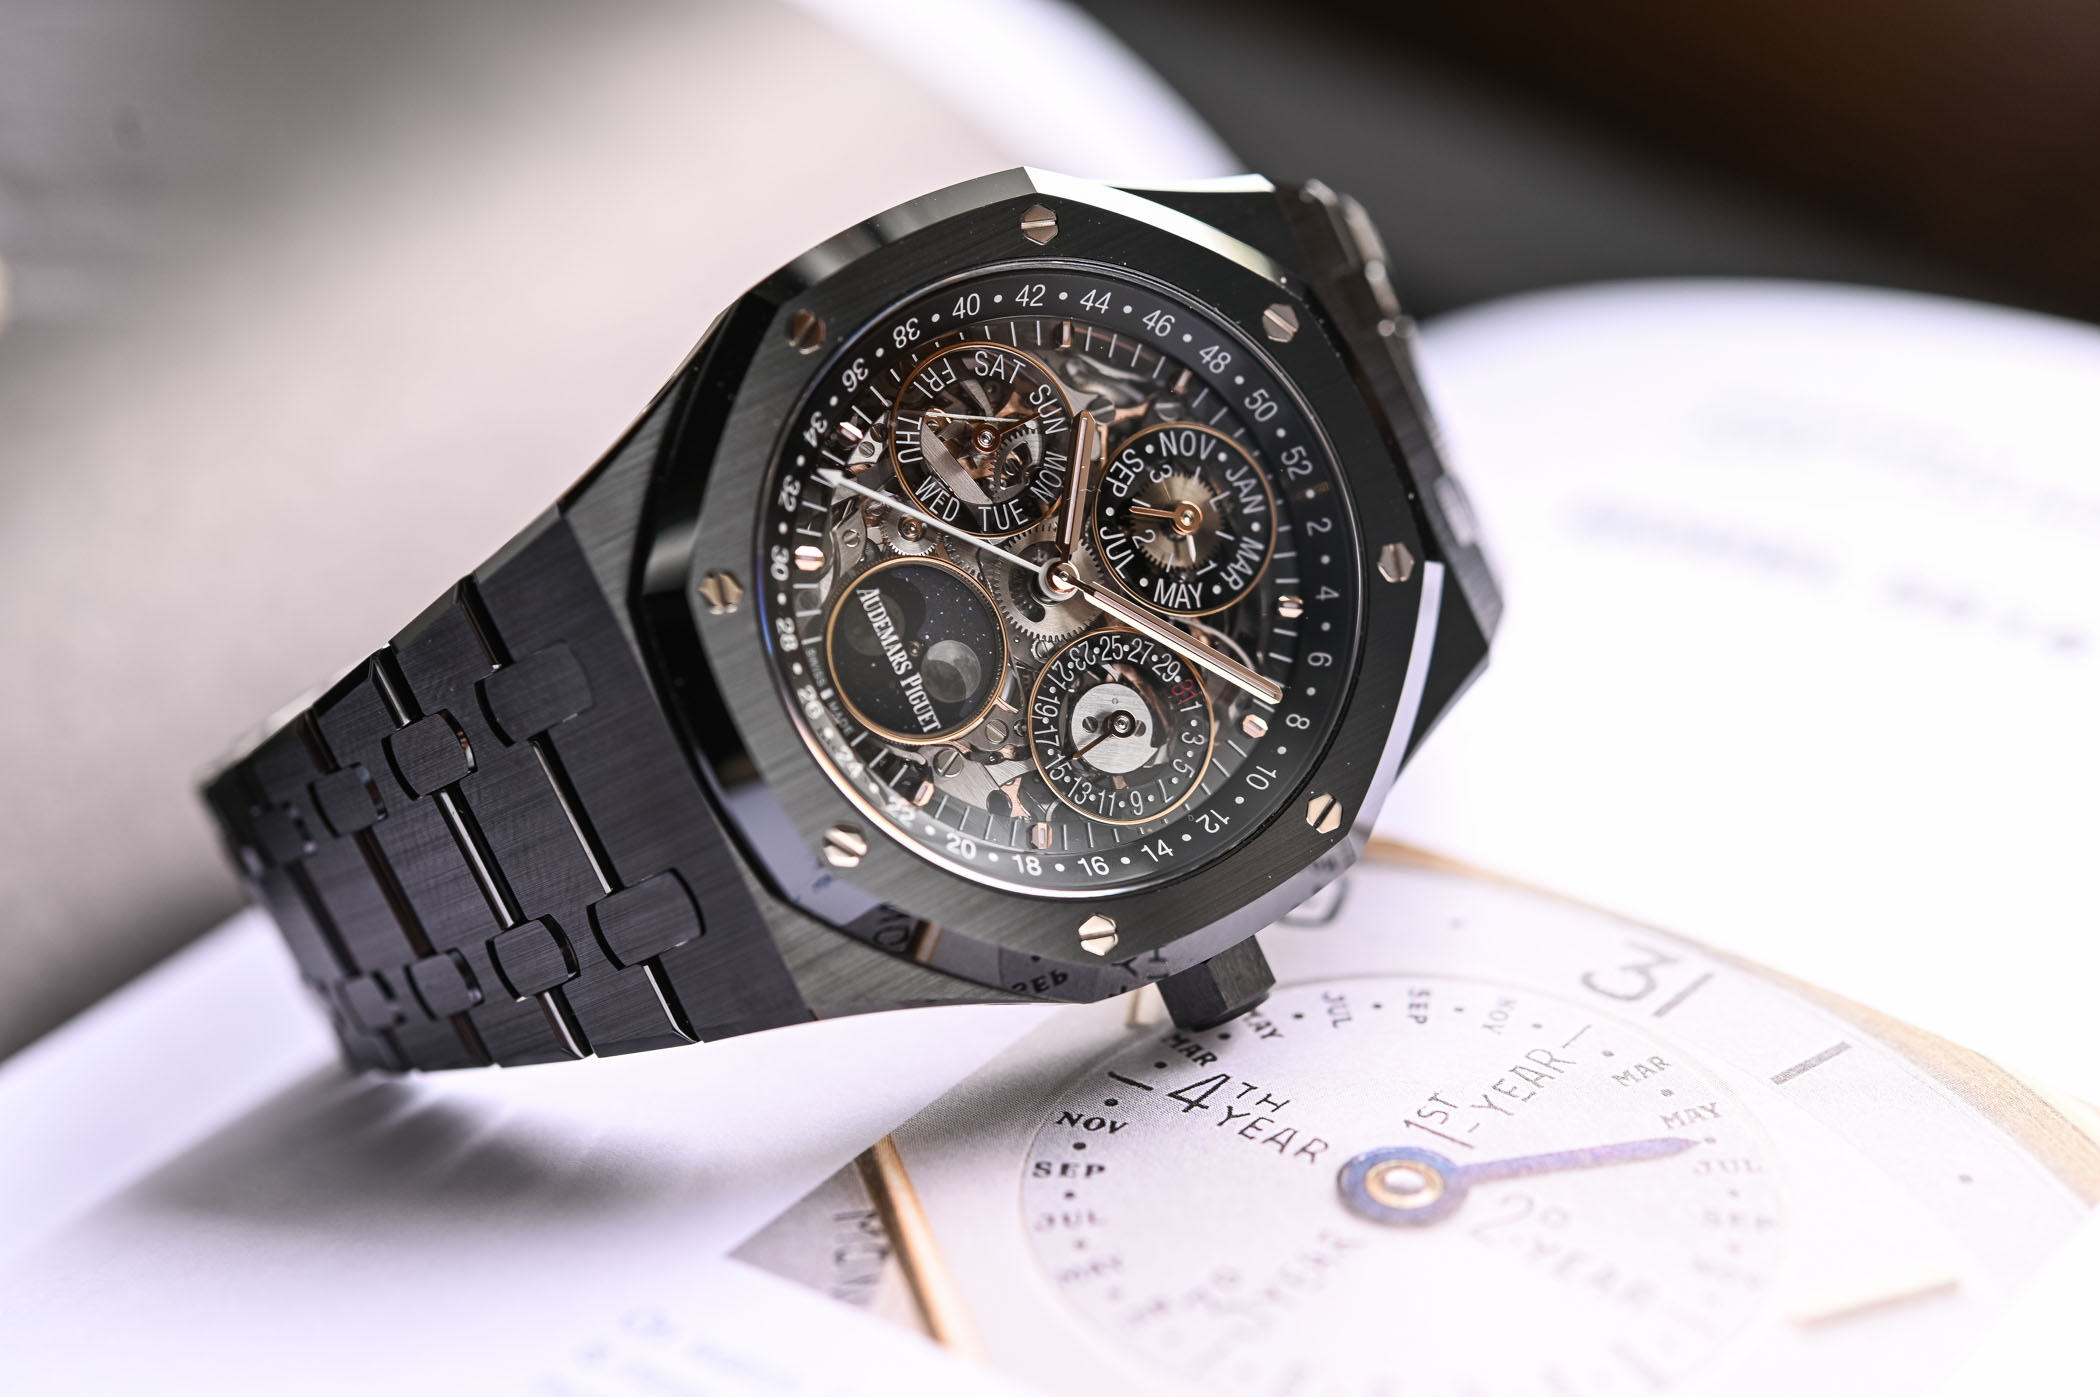 Audemars Piguet Royal Oak Perpetual Calendar Openworked Black Ceramic - 26585CE.OO.1225CE.01